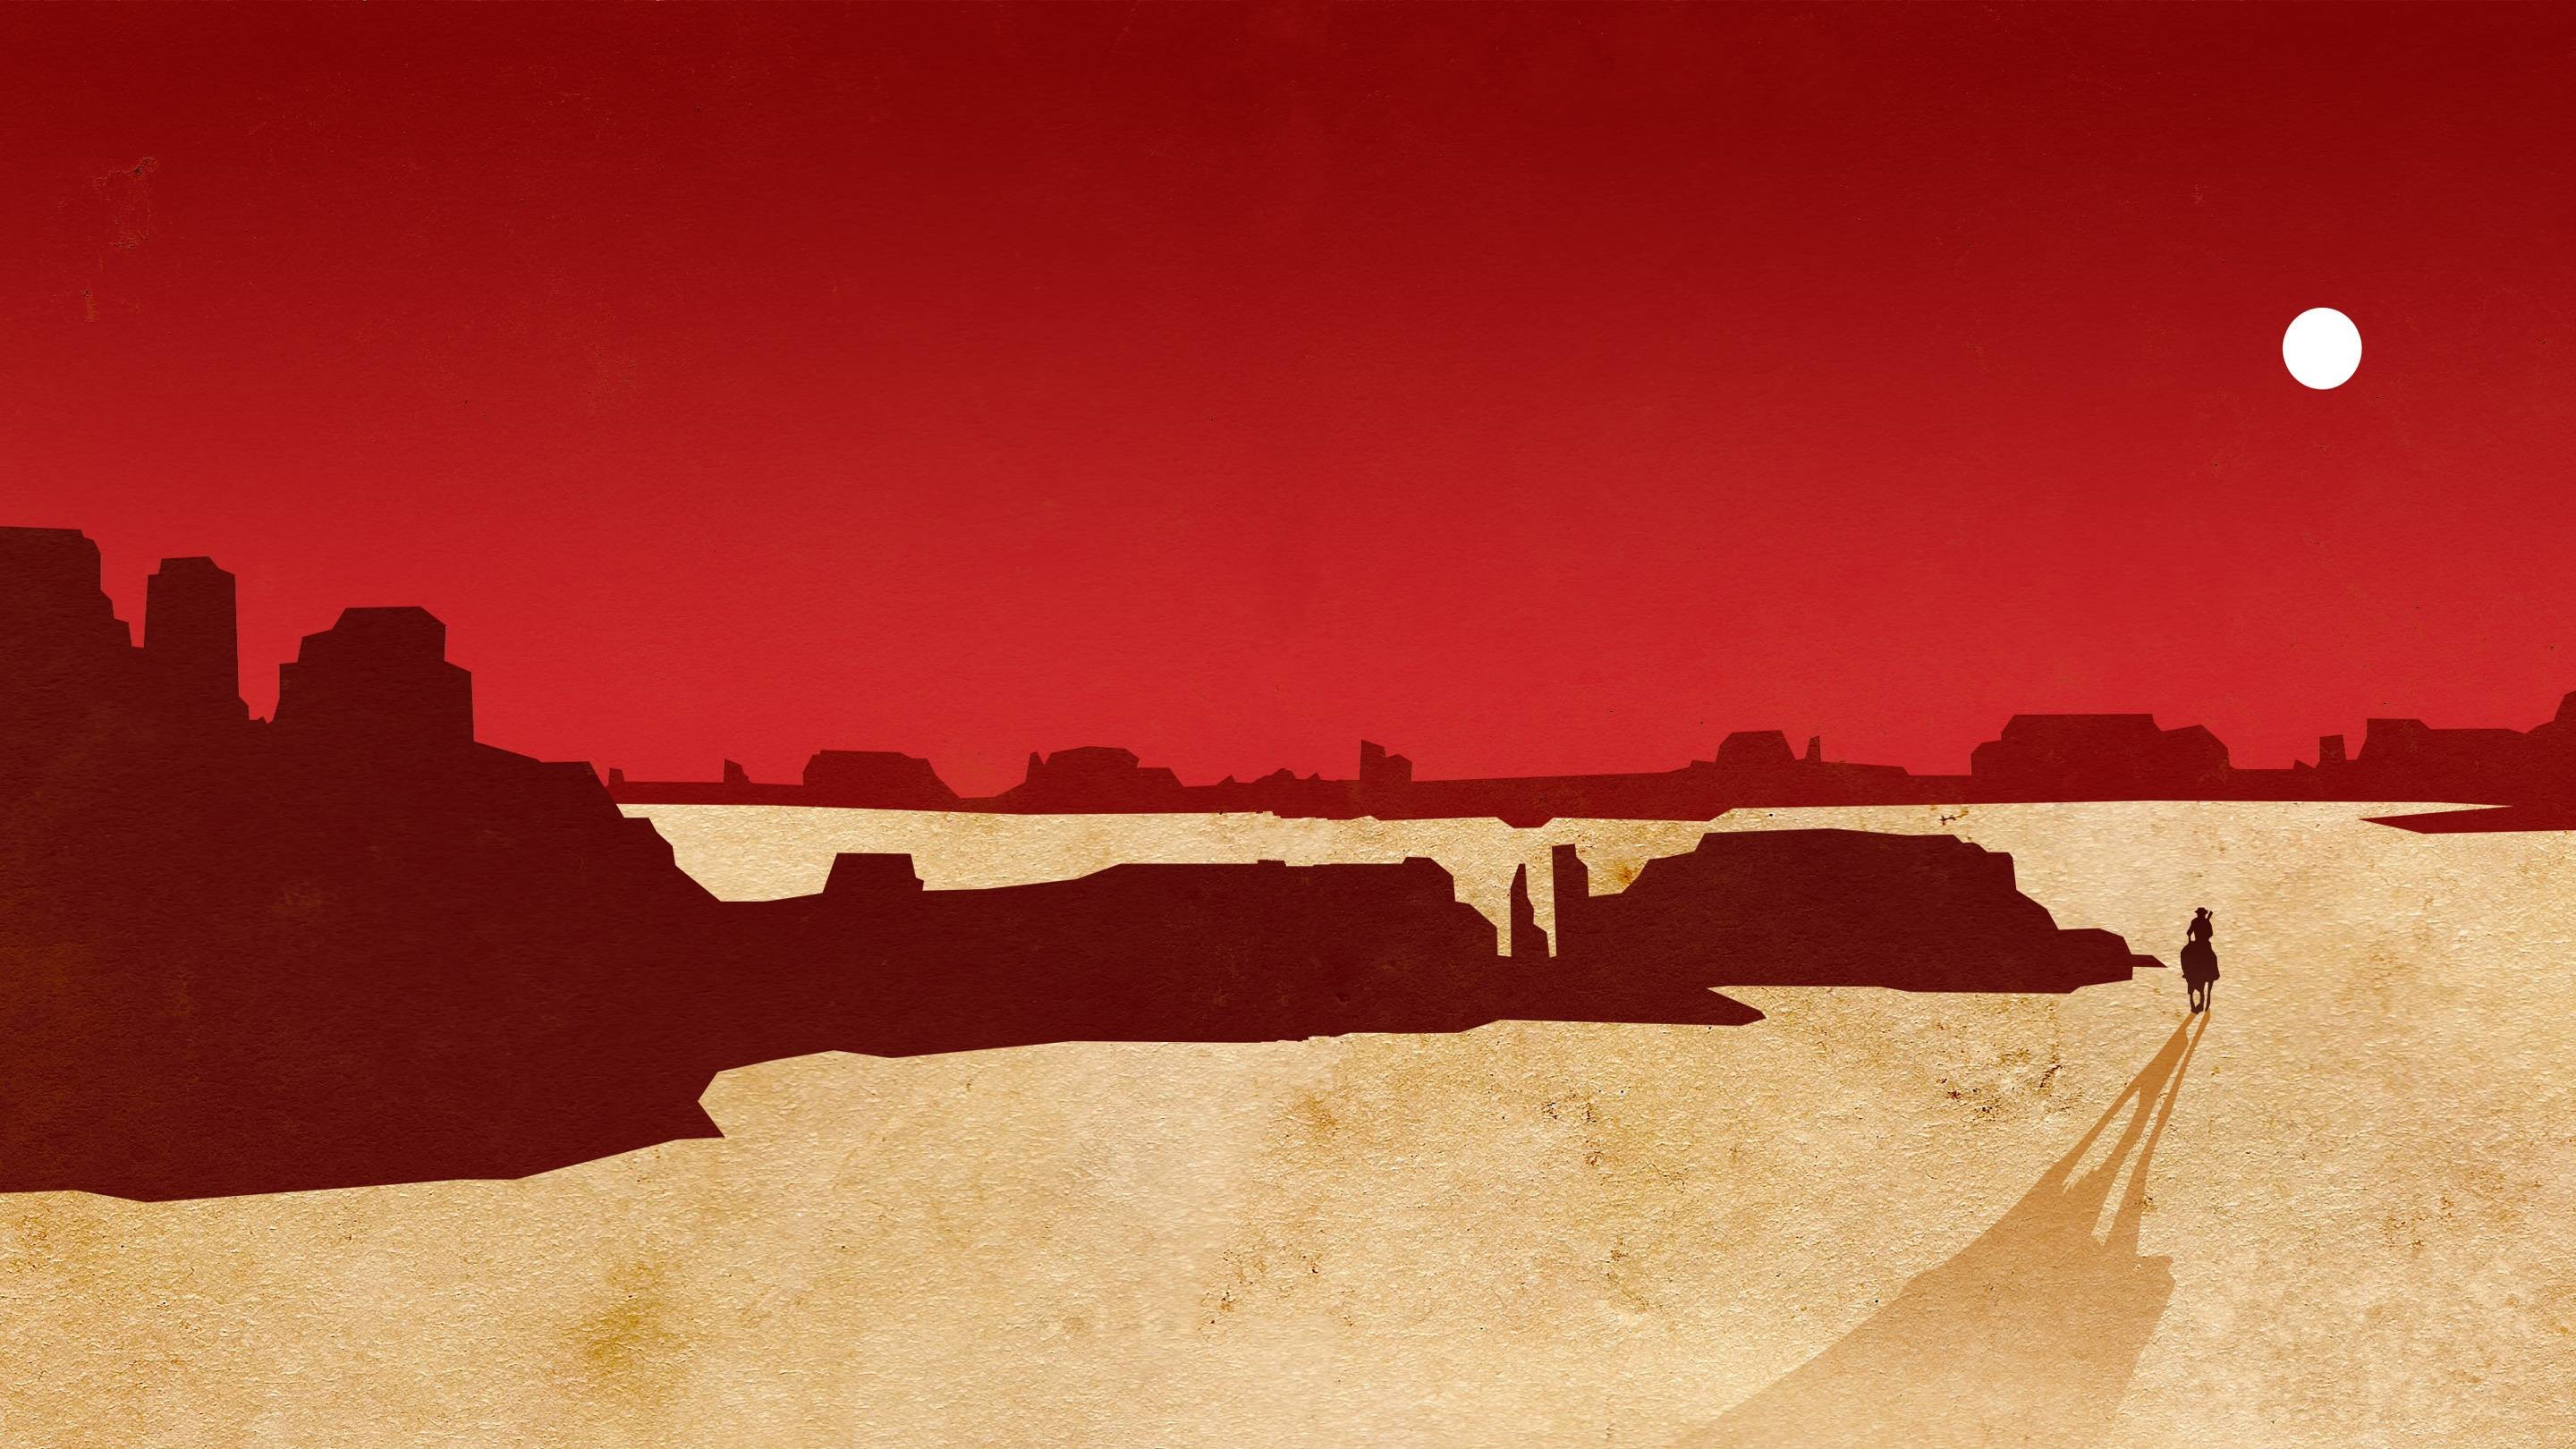 … red dead redemption wallpapers high quality download free …